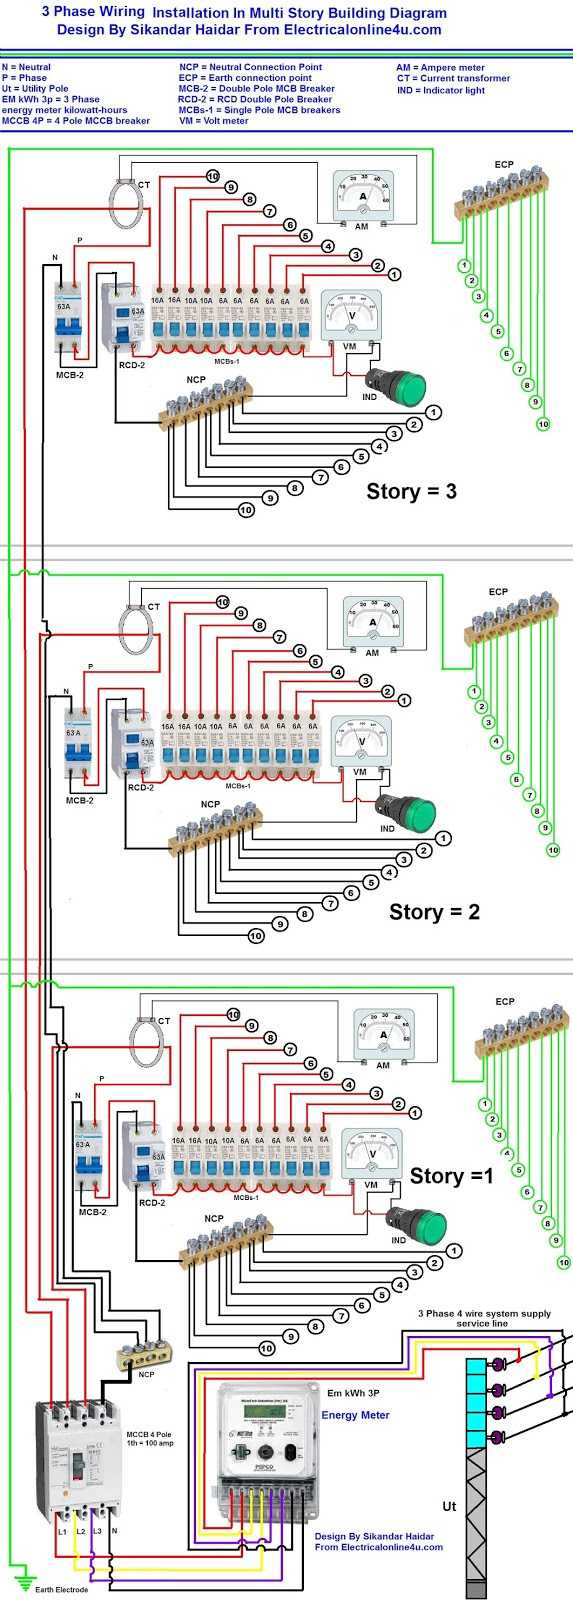 3 Phase Distribution Board Diagram For Multi Story House - Building ...